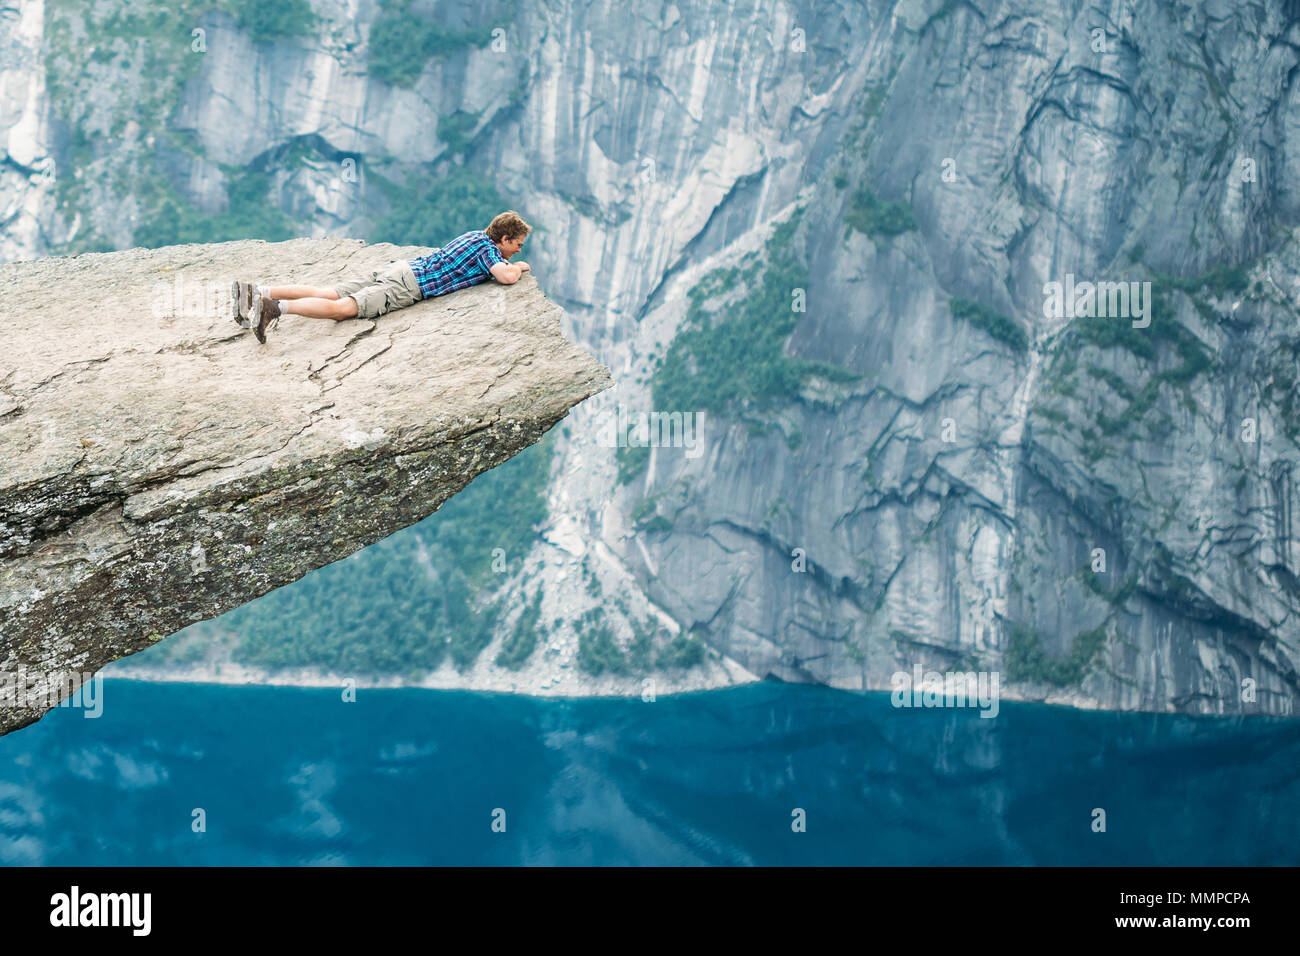 Odda, Norway - August 04, 2014: Young Man On Rock Clings To The Edge Of A Cliff And Looking Down In The Mountains Of Norway. Natural Attractions Of Tr - Stock Image